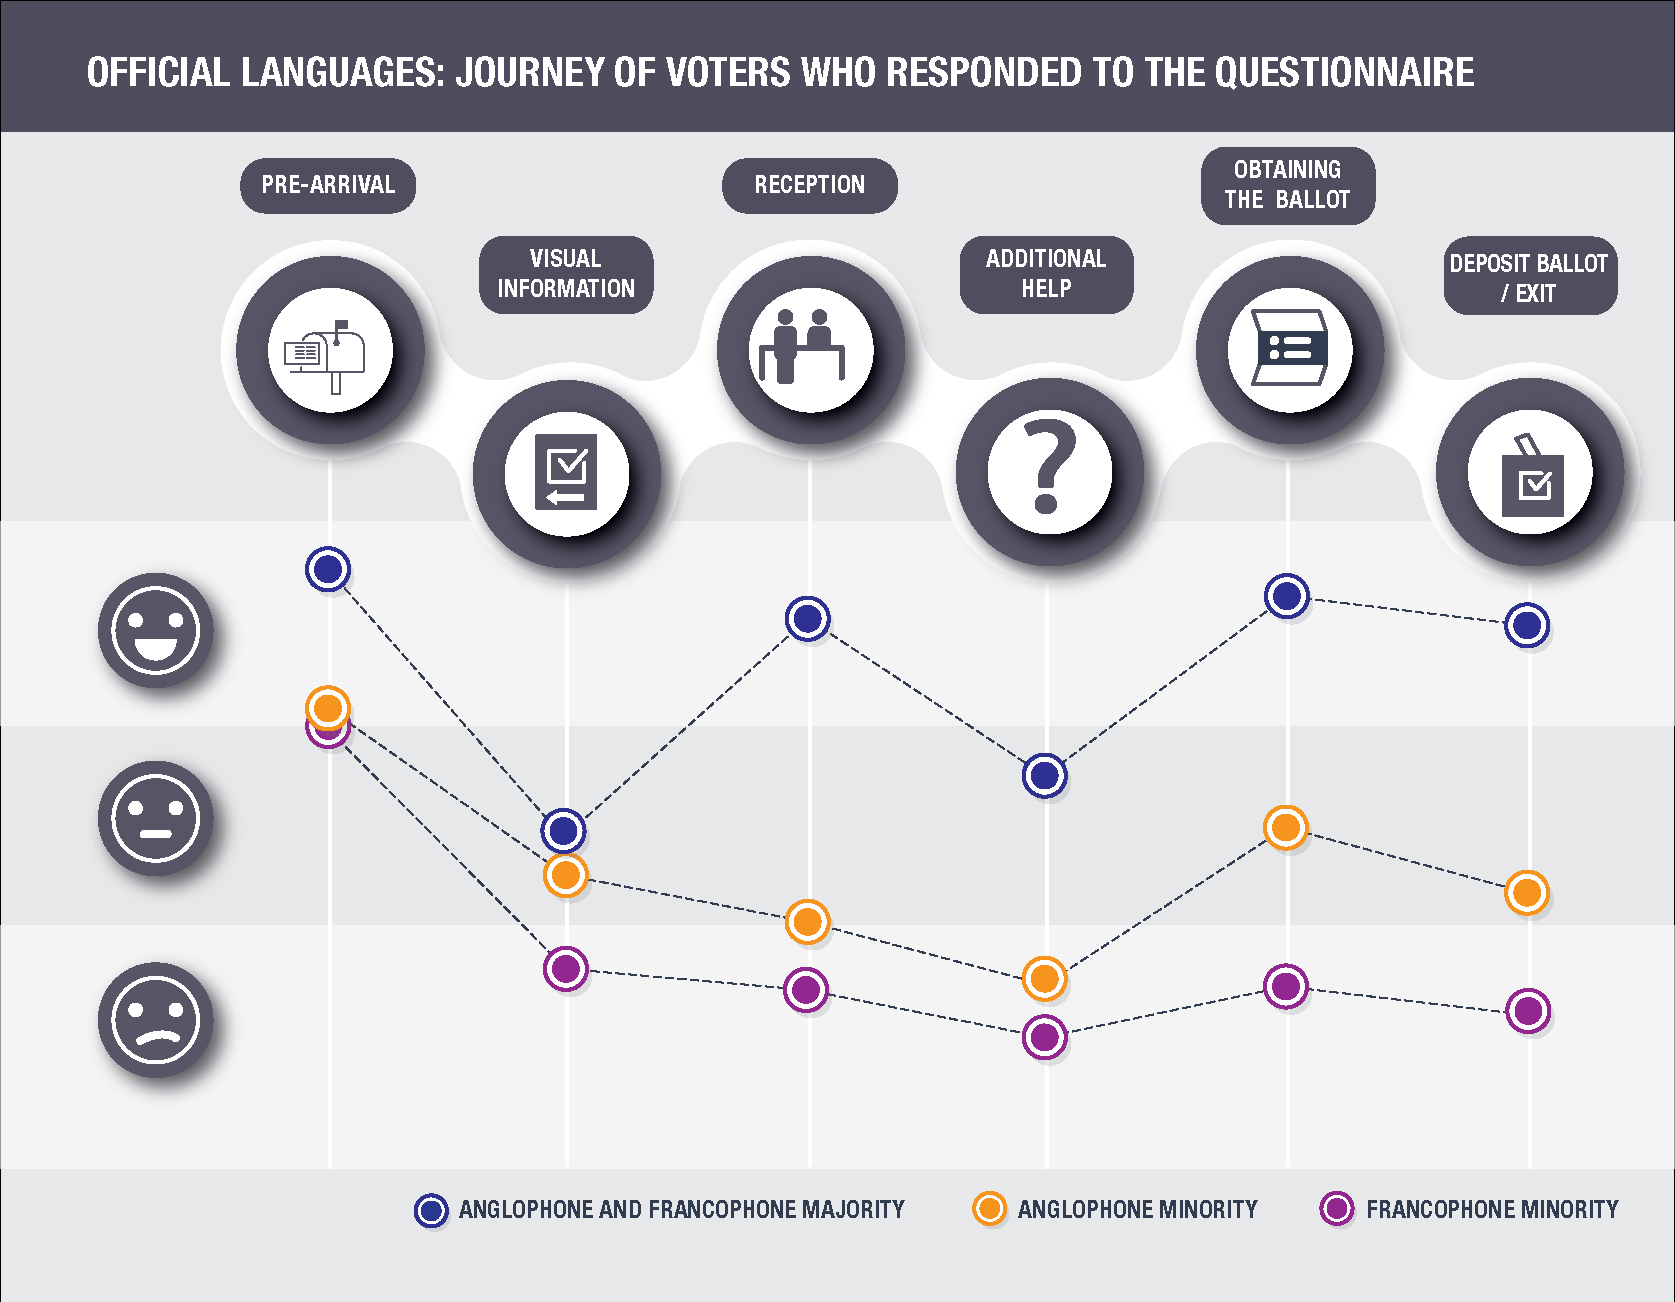 Official Languages: Journey of voters who responded to the questionnaire